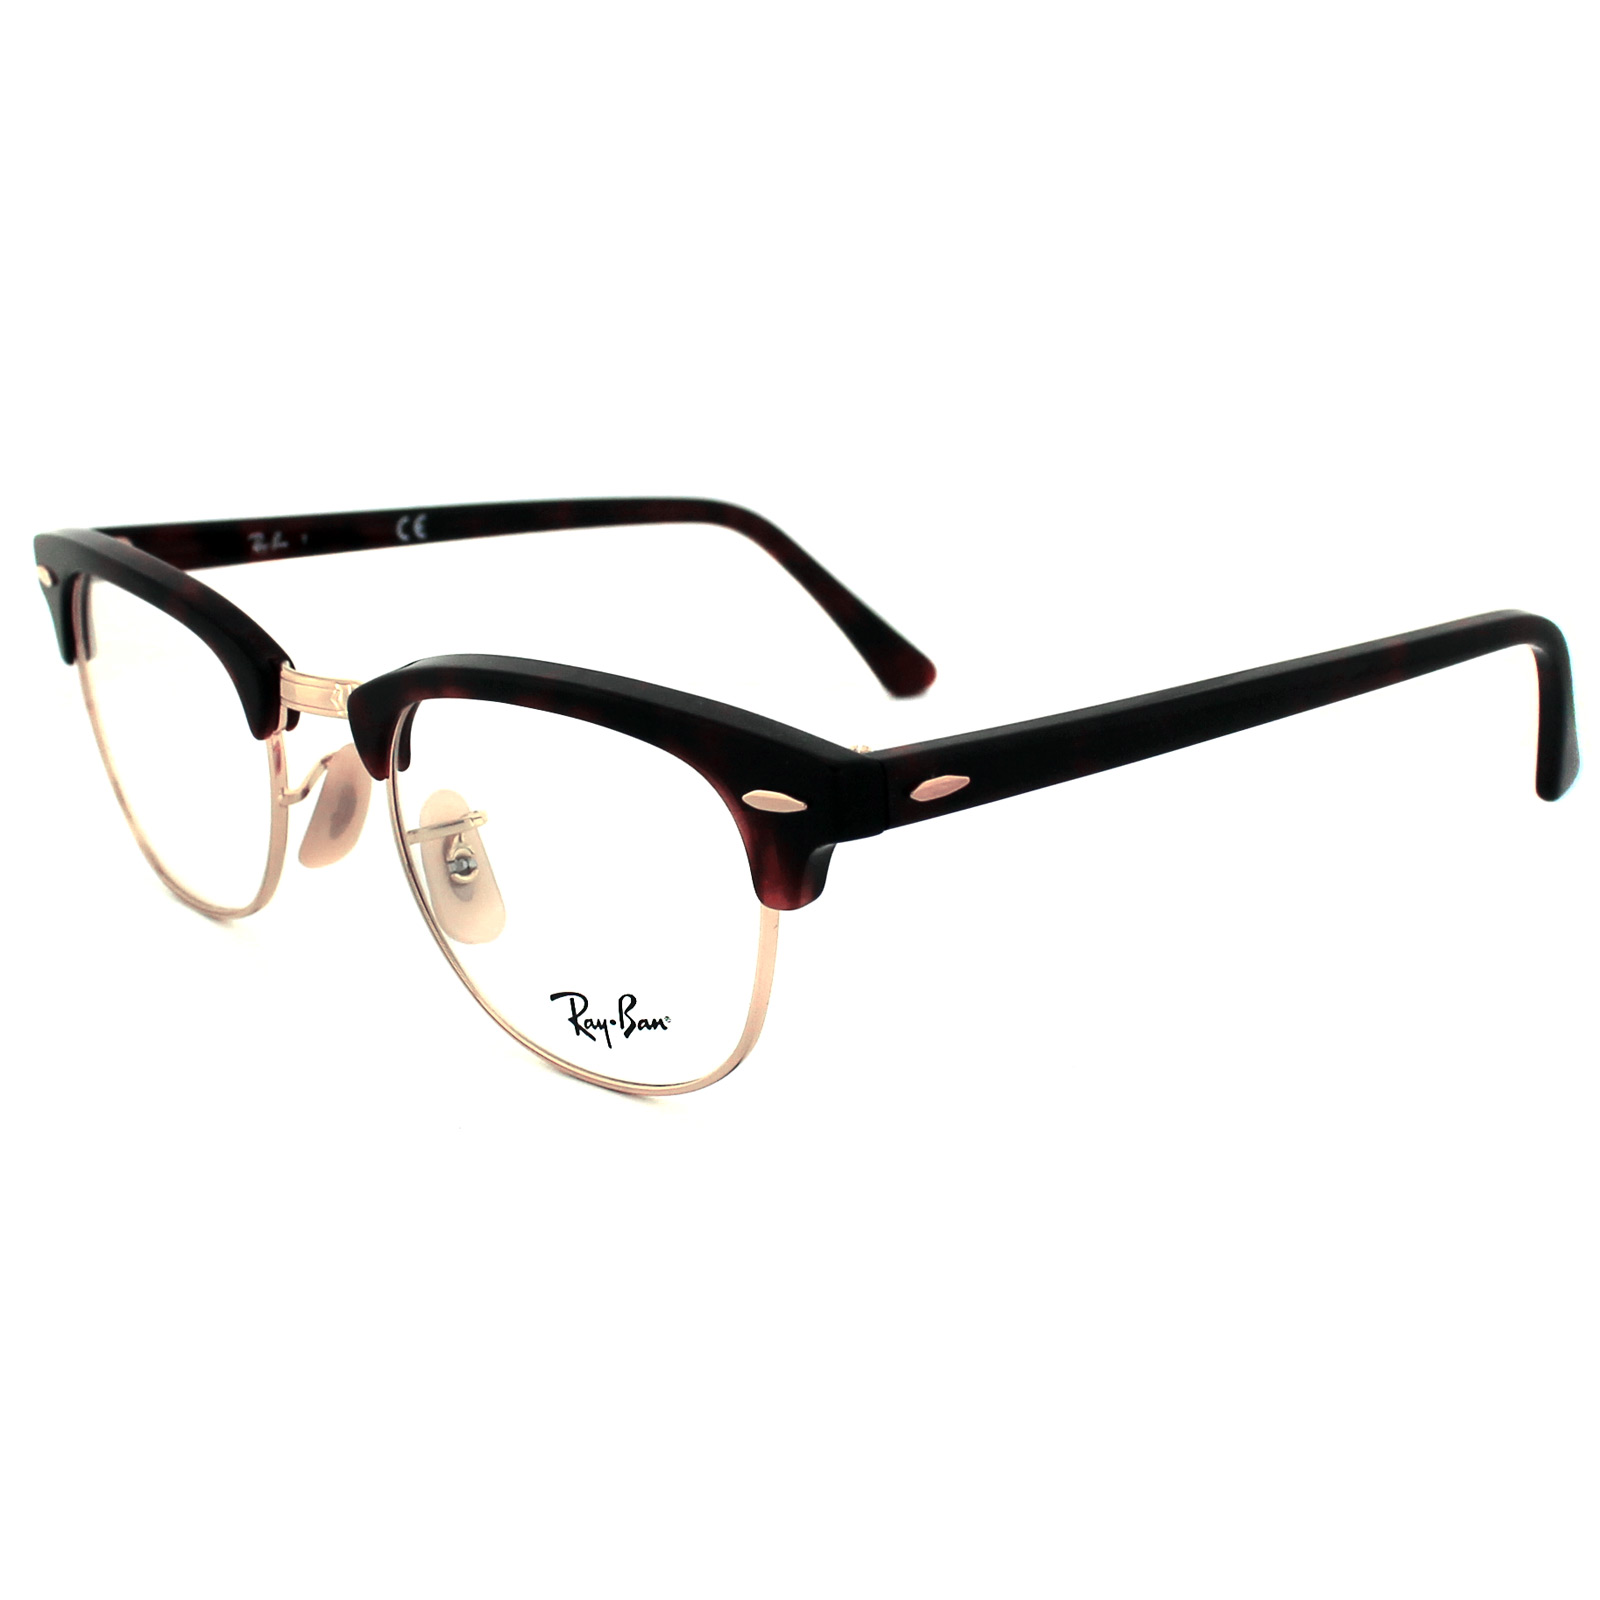 Ray Ban Glasses Without Frame : Ray-Ban Glasses Frames 5154 2372 Red Havana eBay